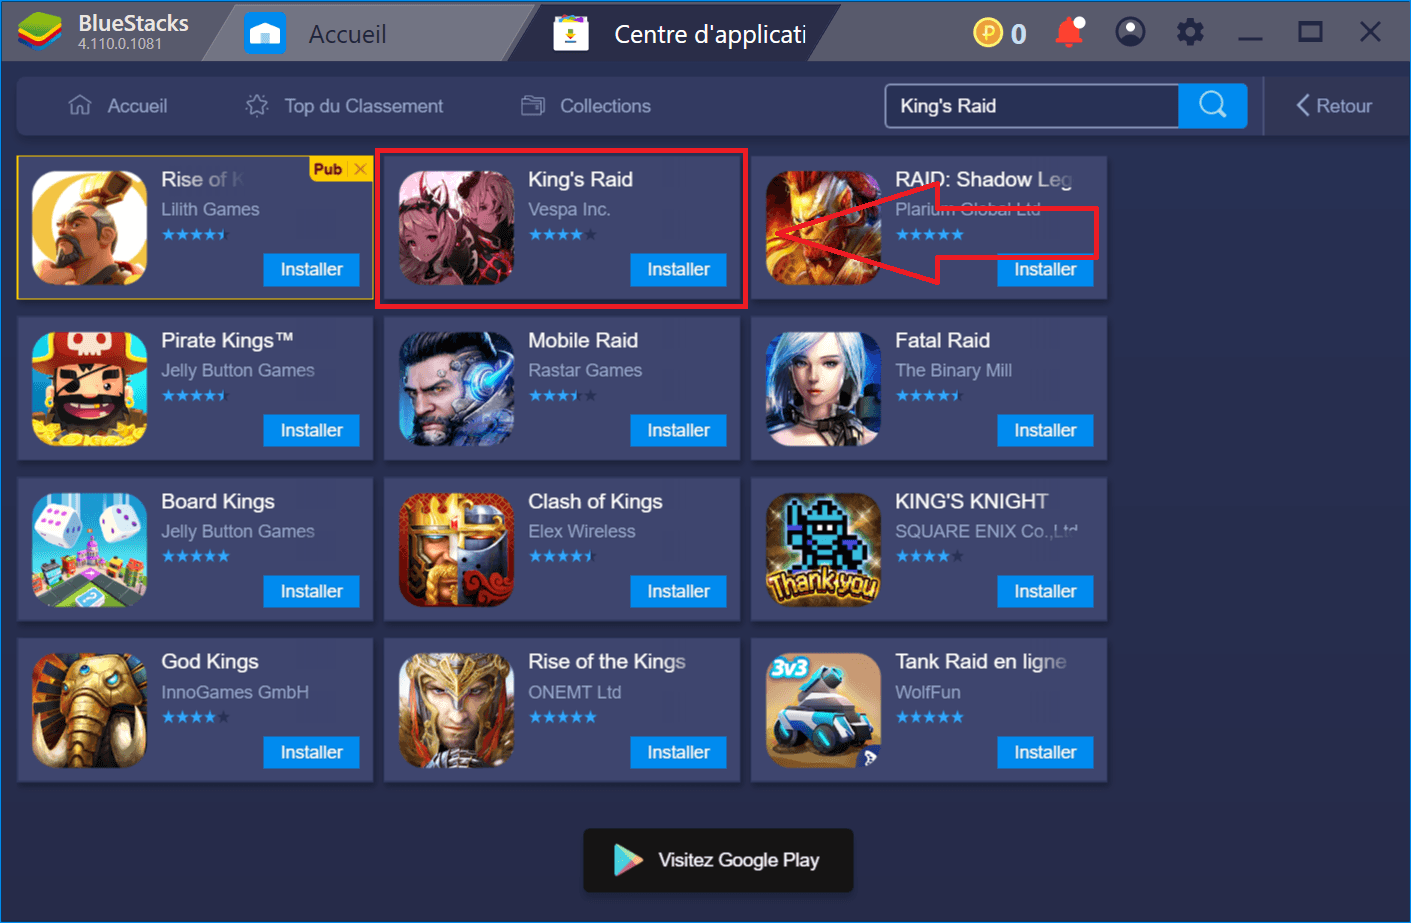 Guide d'installation et de configuration de BlueStacks pour King's Raid